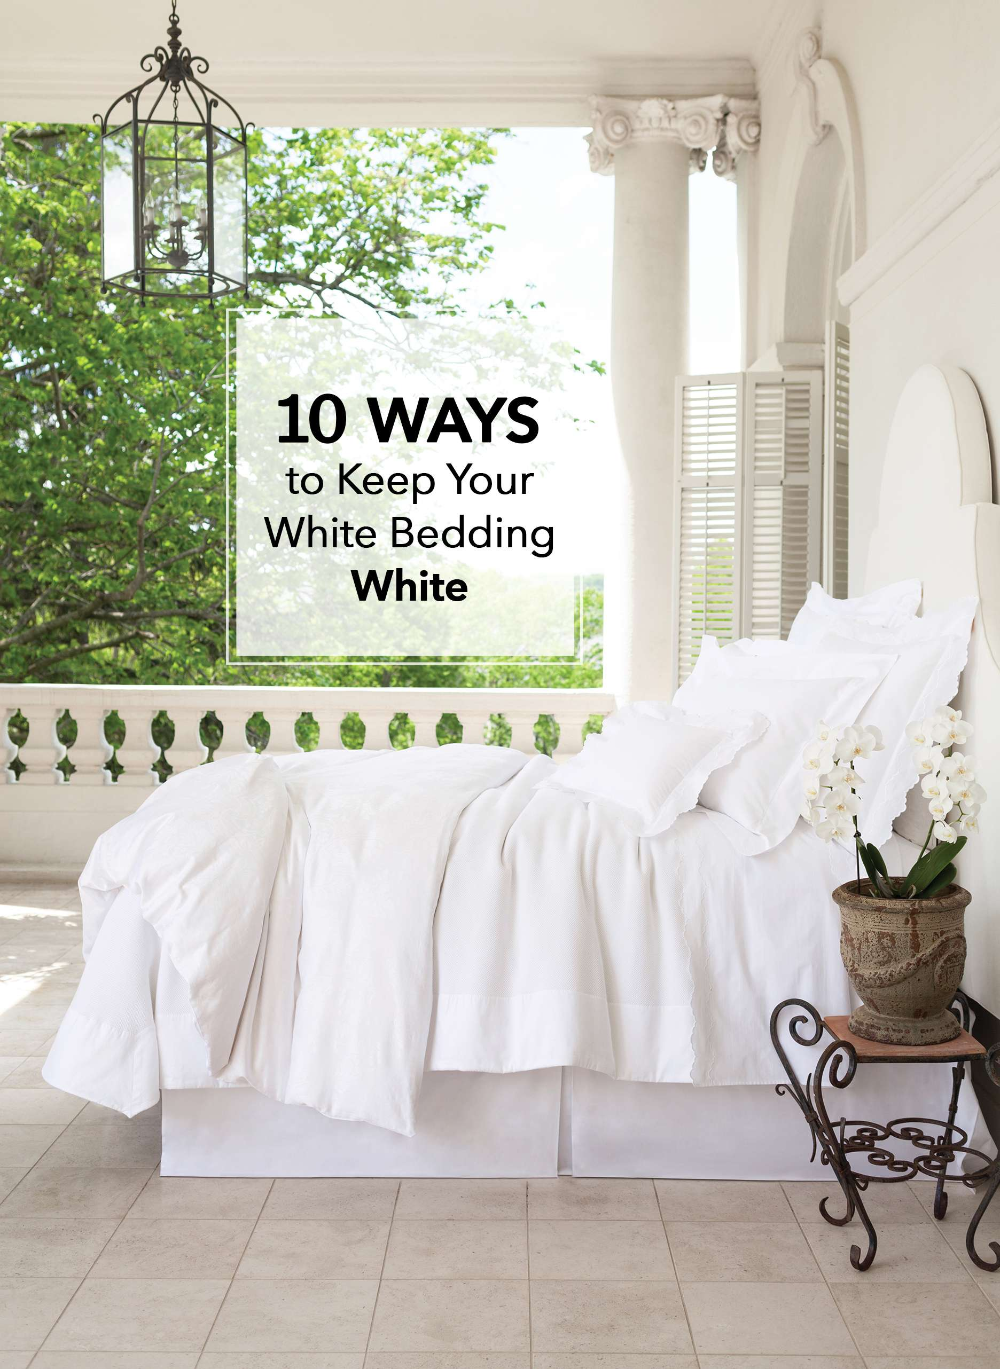 BedEd 101 10 Ways to Keep Your White Bedding White